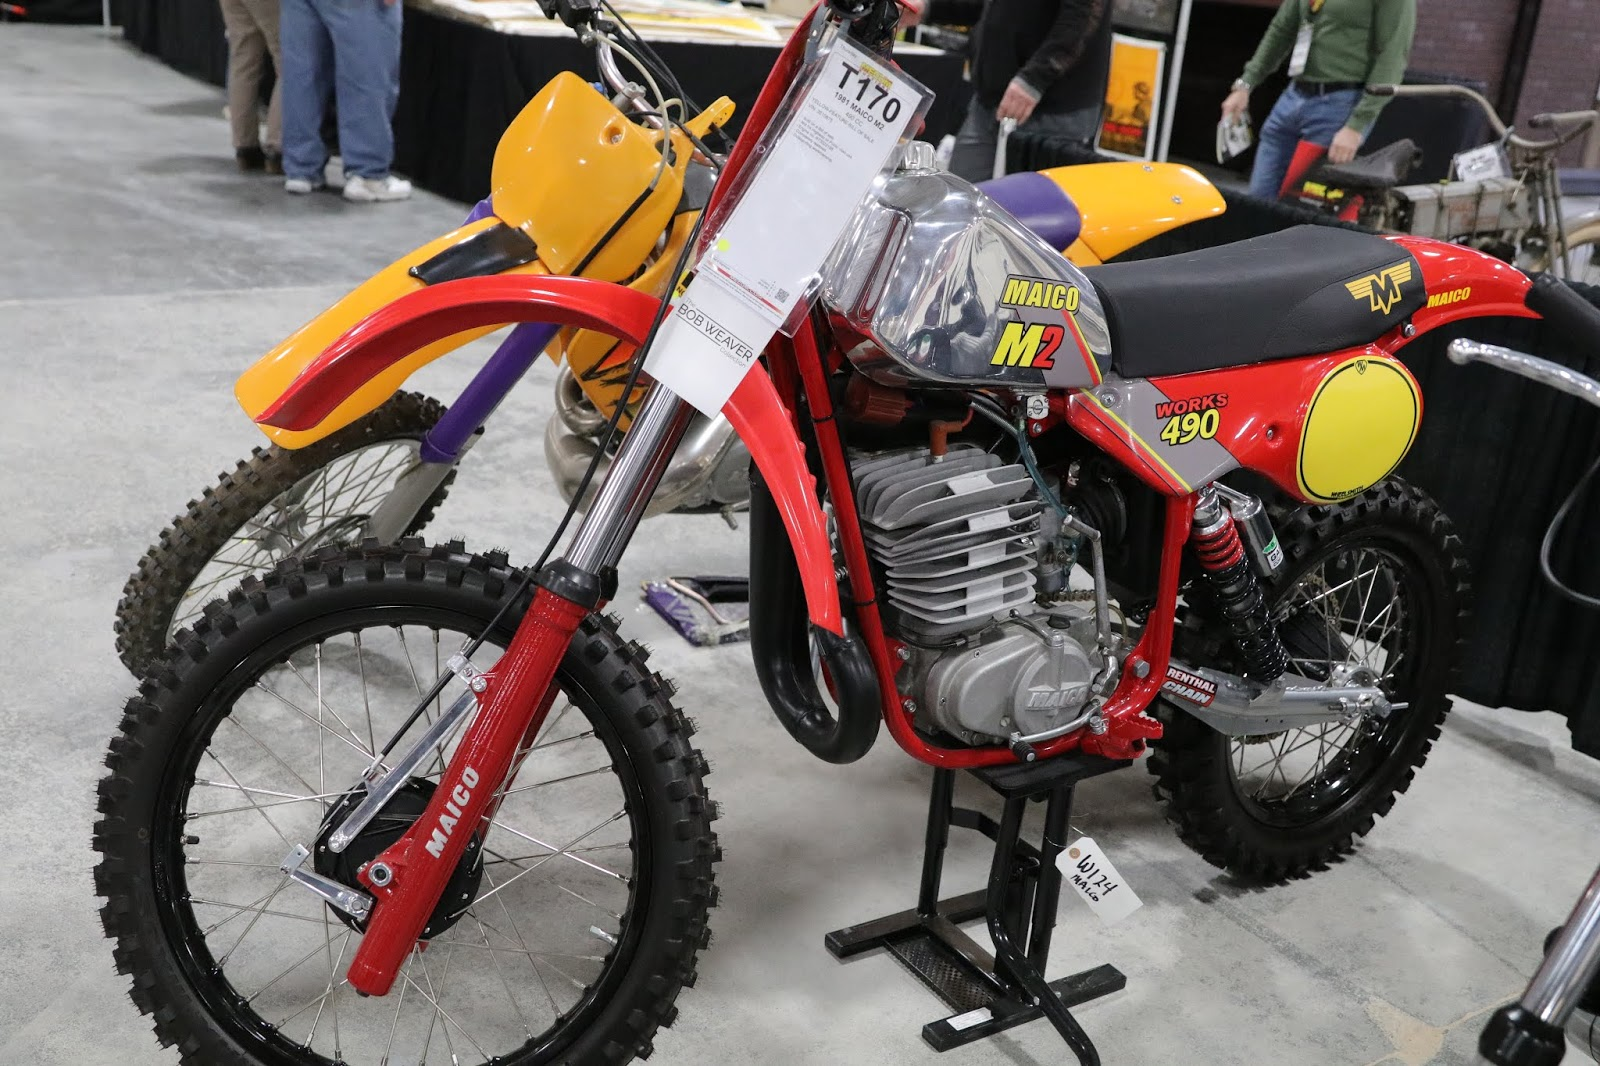 OldMotoDude: 1979 Maico 490 M2 sold for $10,175 at the 2019